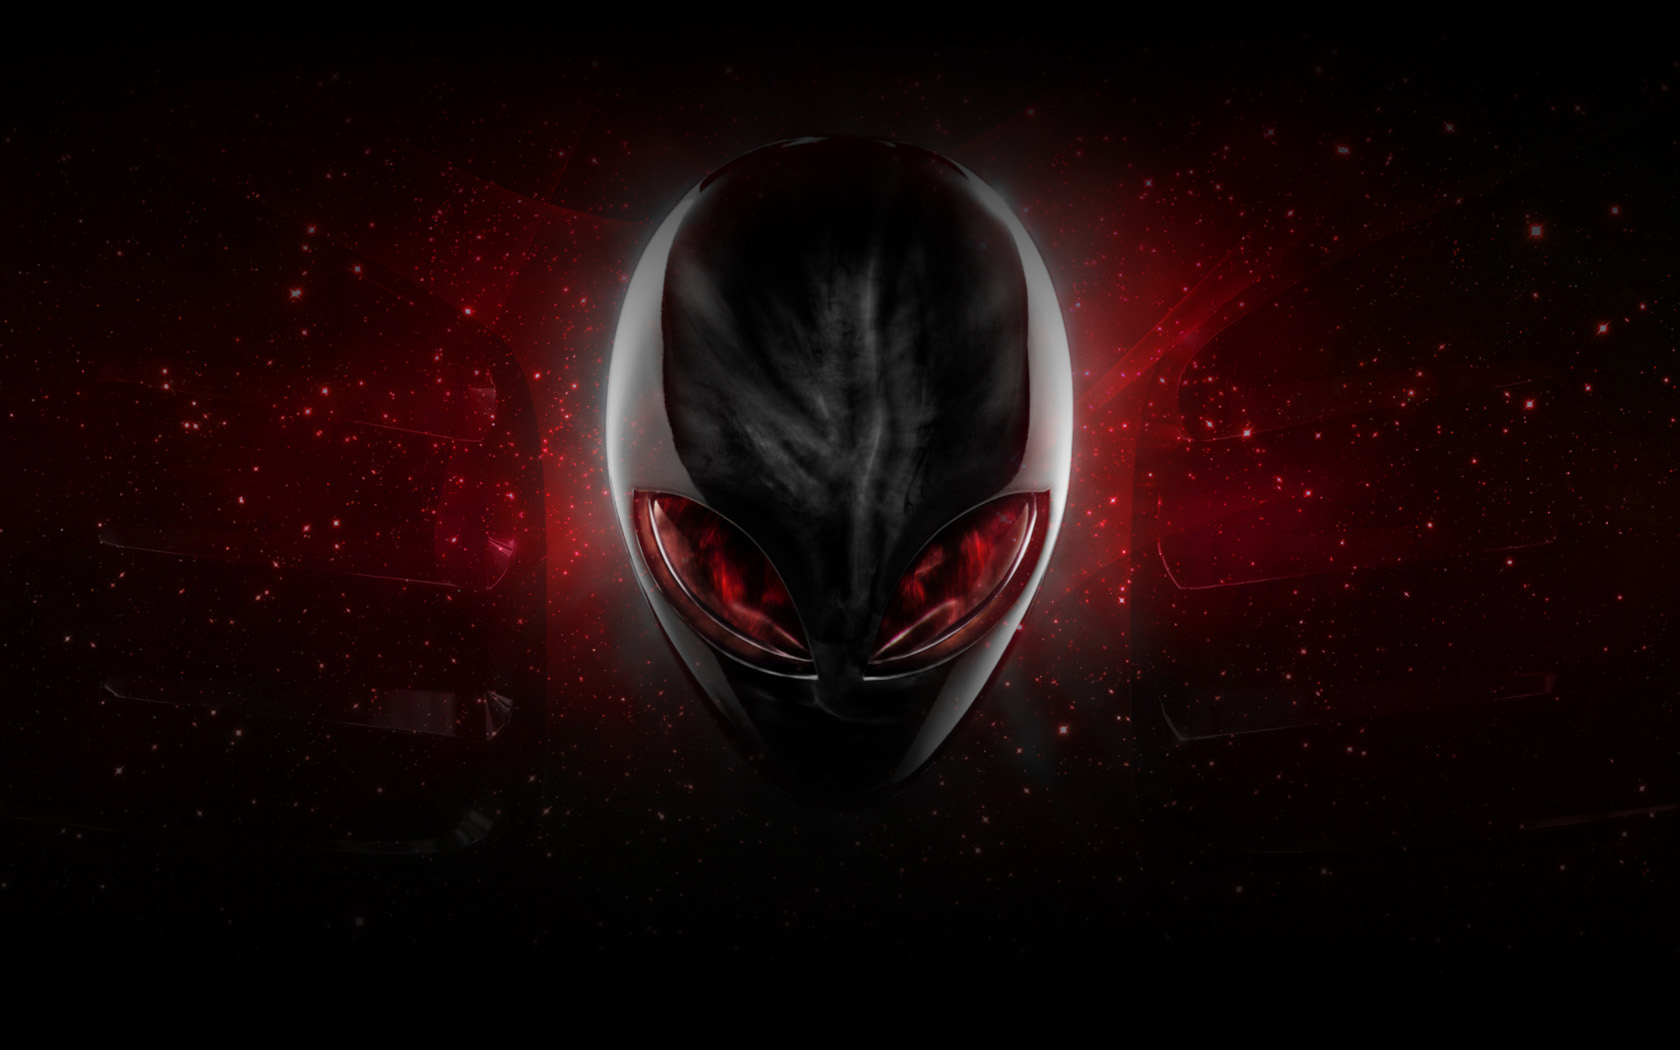 netfs70f2010196cdAlienware Red Wallpaper by ExileStyle90jpg 1680x1050